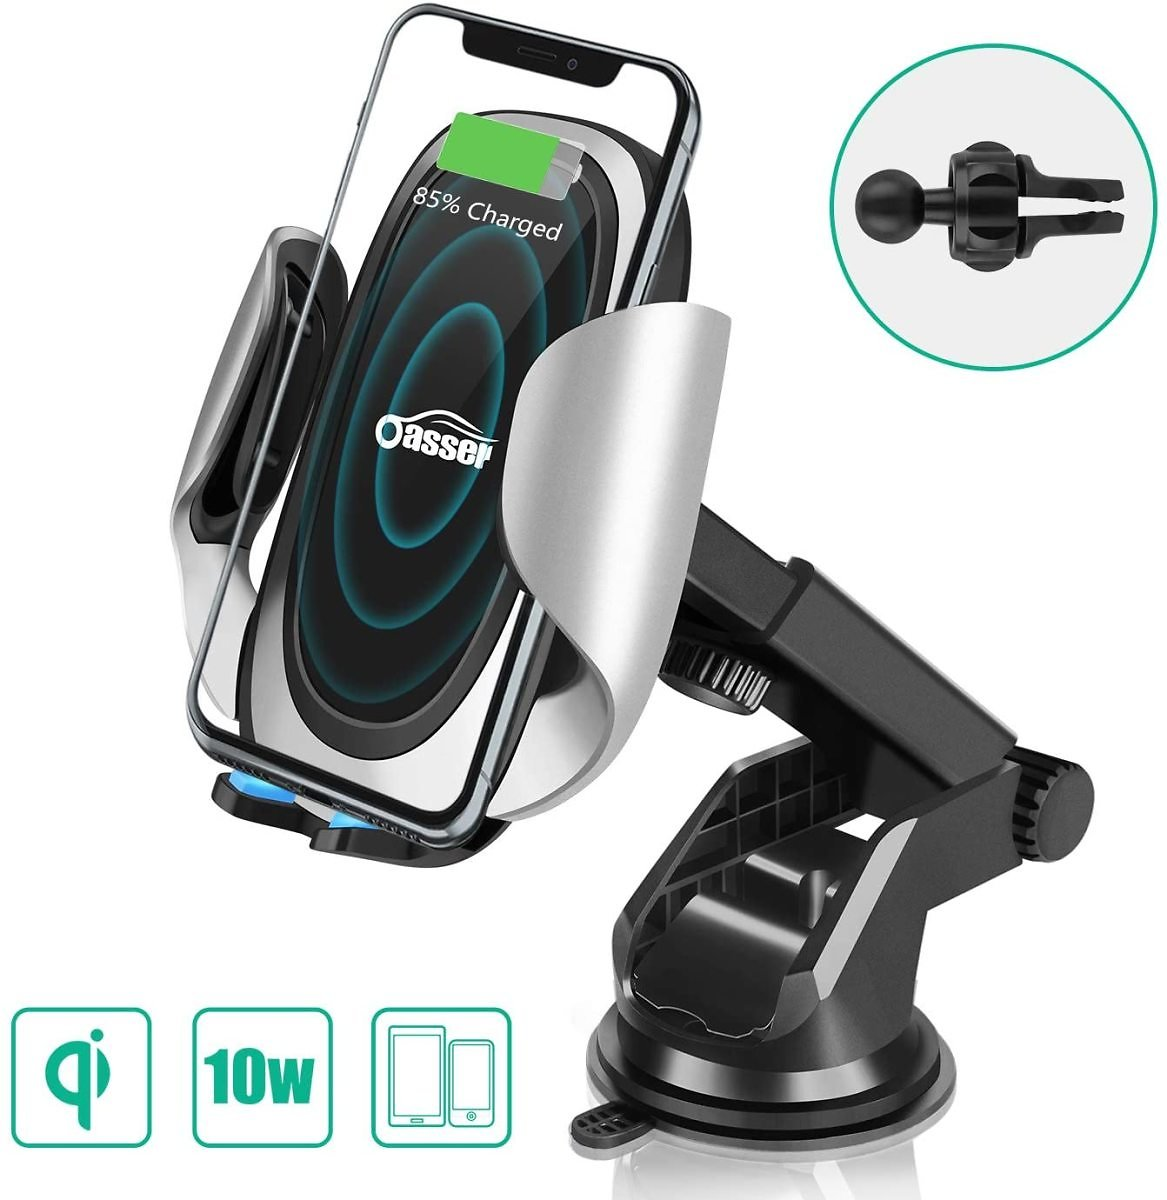 Oasser Wireless Car Charger 10W/7.5W Fast Charging Car Phone Holder Air Vent Dashboard Windshield with Adjustable Coil for IPhon